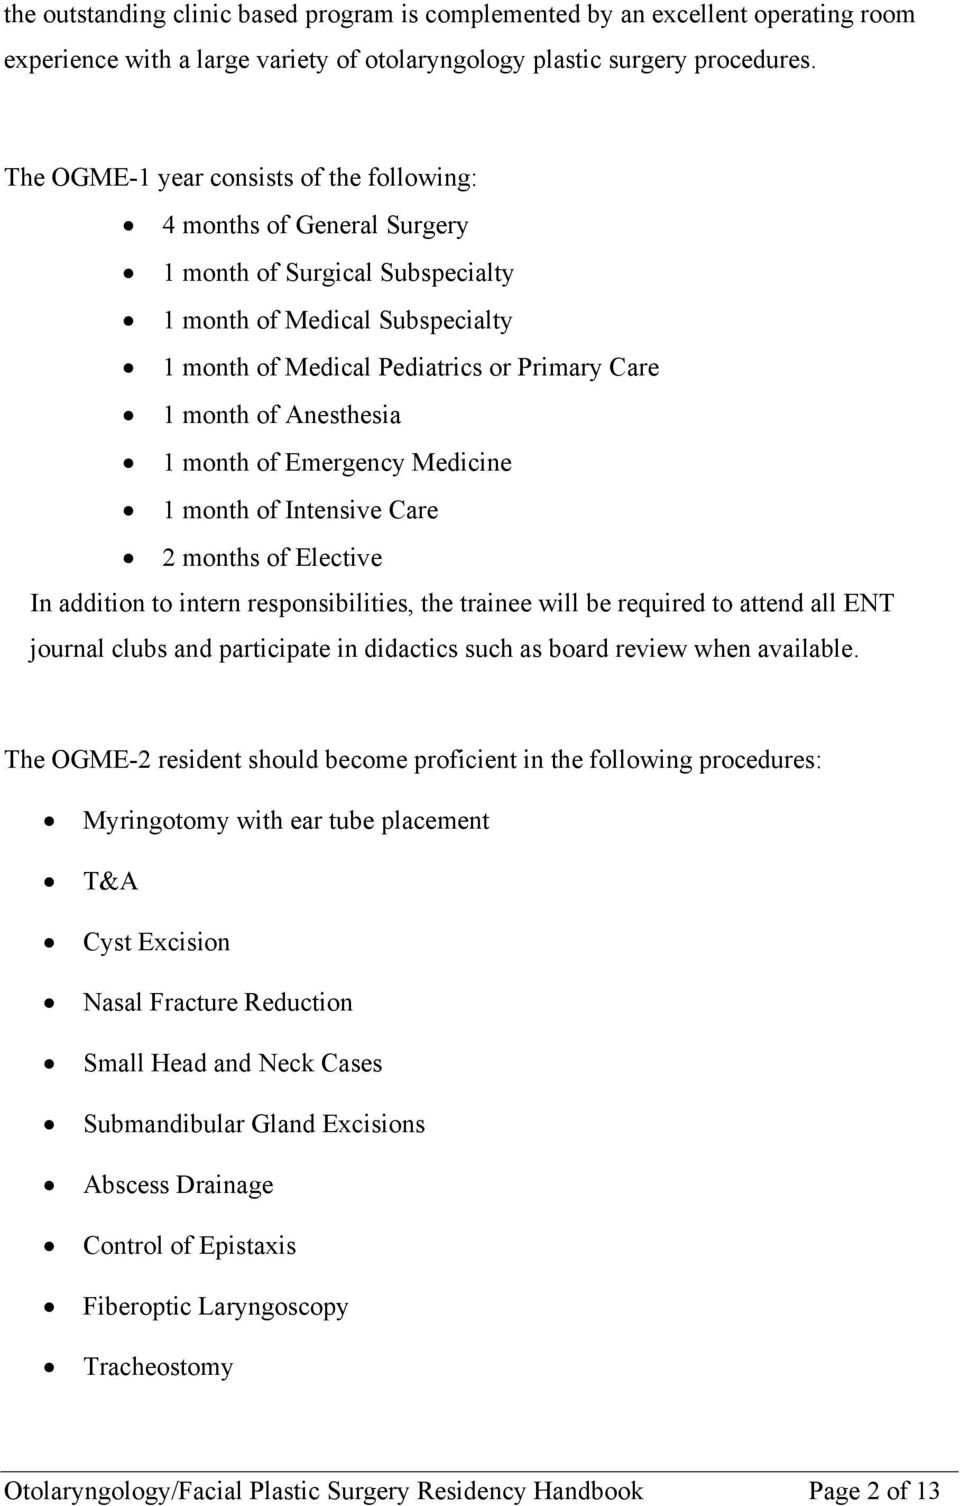 Anesthesia 1 month of Emergency Medicine 1 month of Intensive Care 2 months of Elective In addition to intern responsibilities, the trainee will be required to attend all ENT journal clubs and